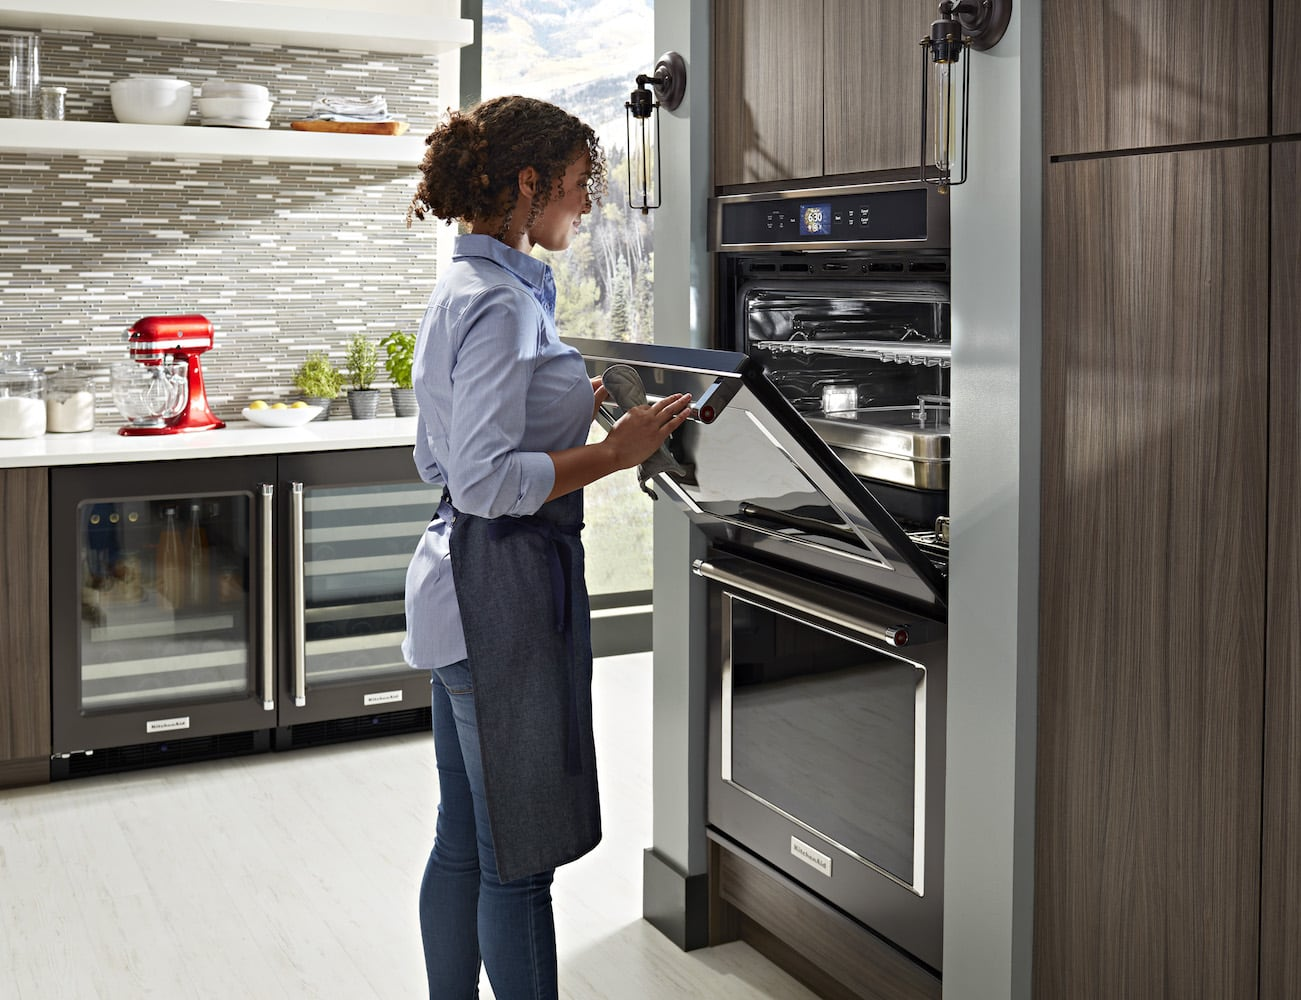 KitchenAid Smart Oven+ Connected Wall Oven gives you flexibility with attachments